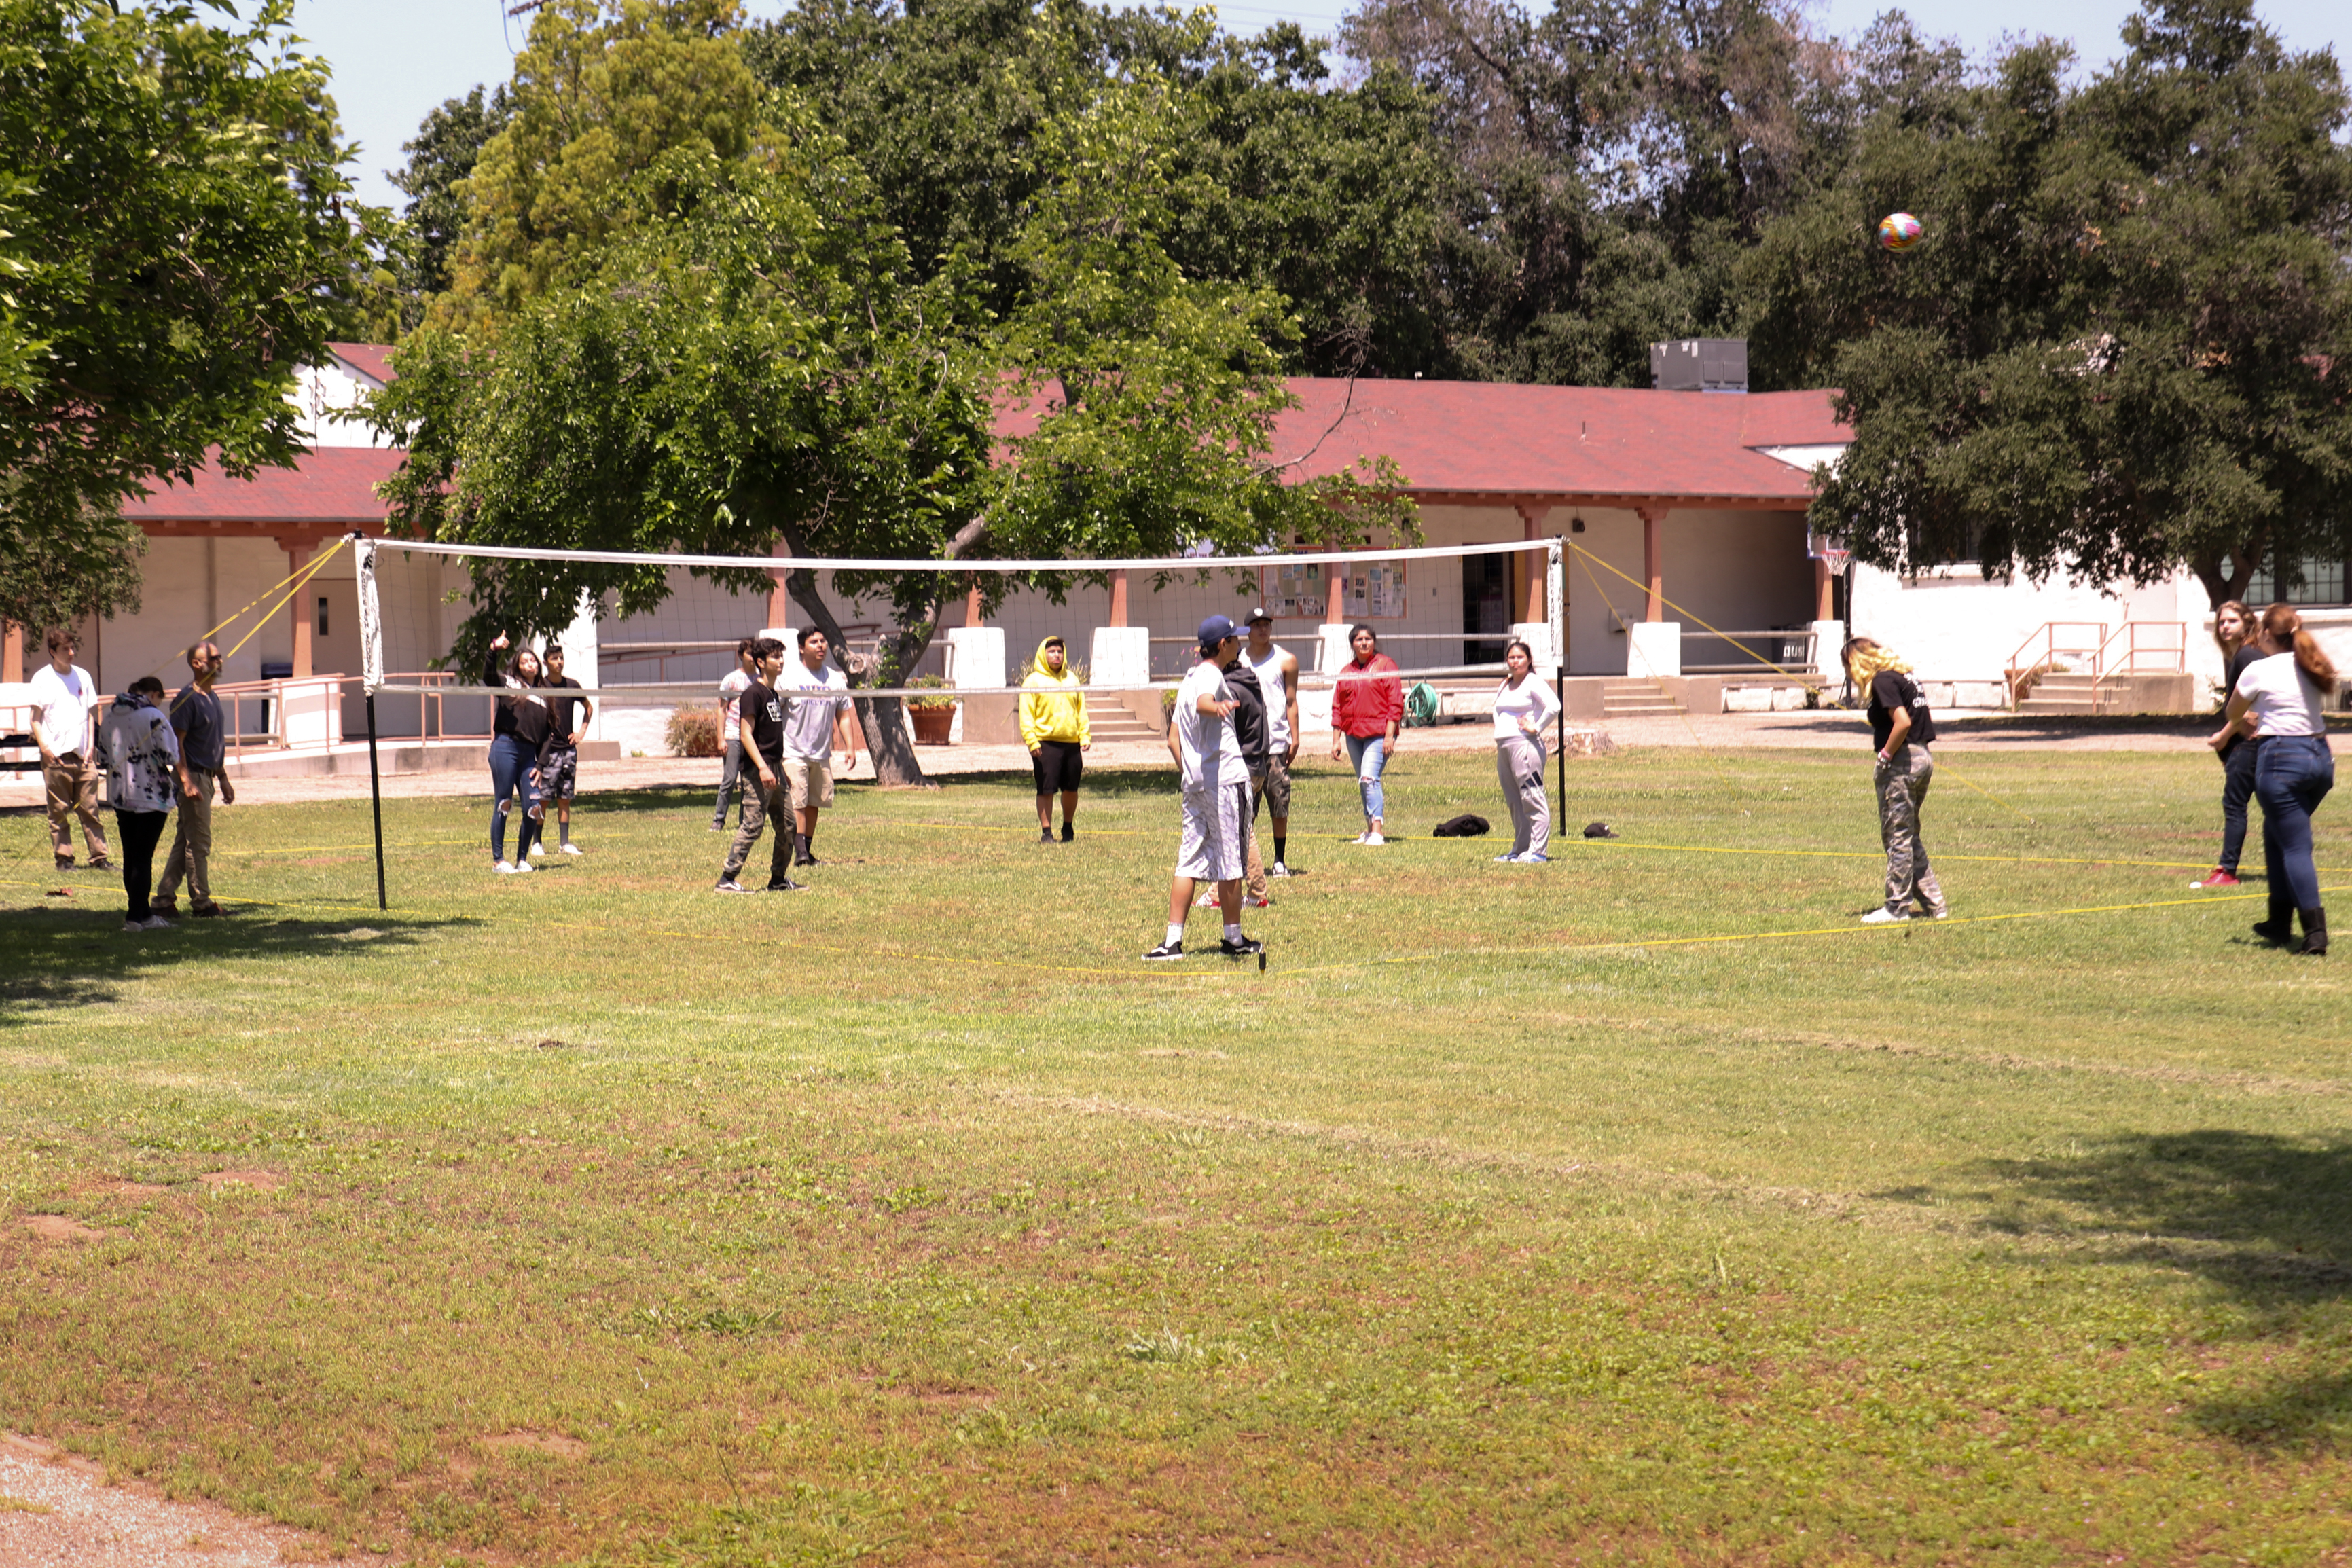 A group of teens all playing soccer in the school's field